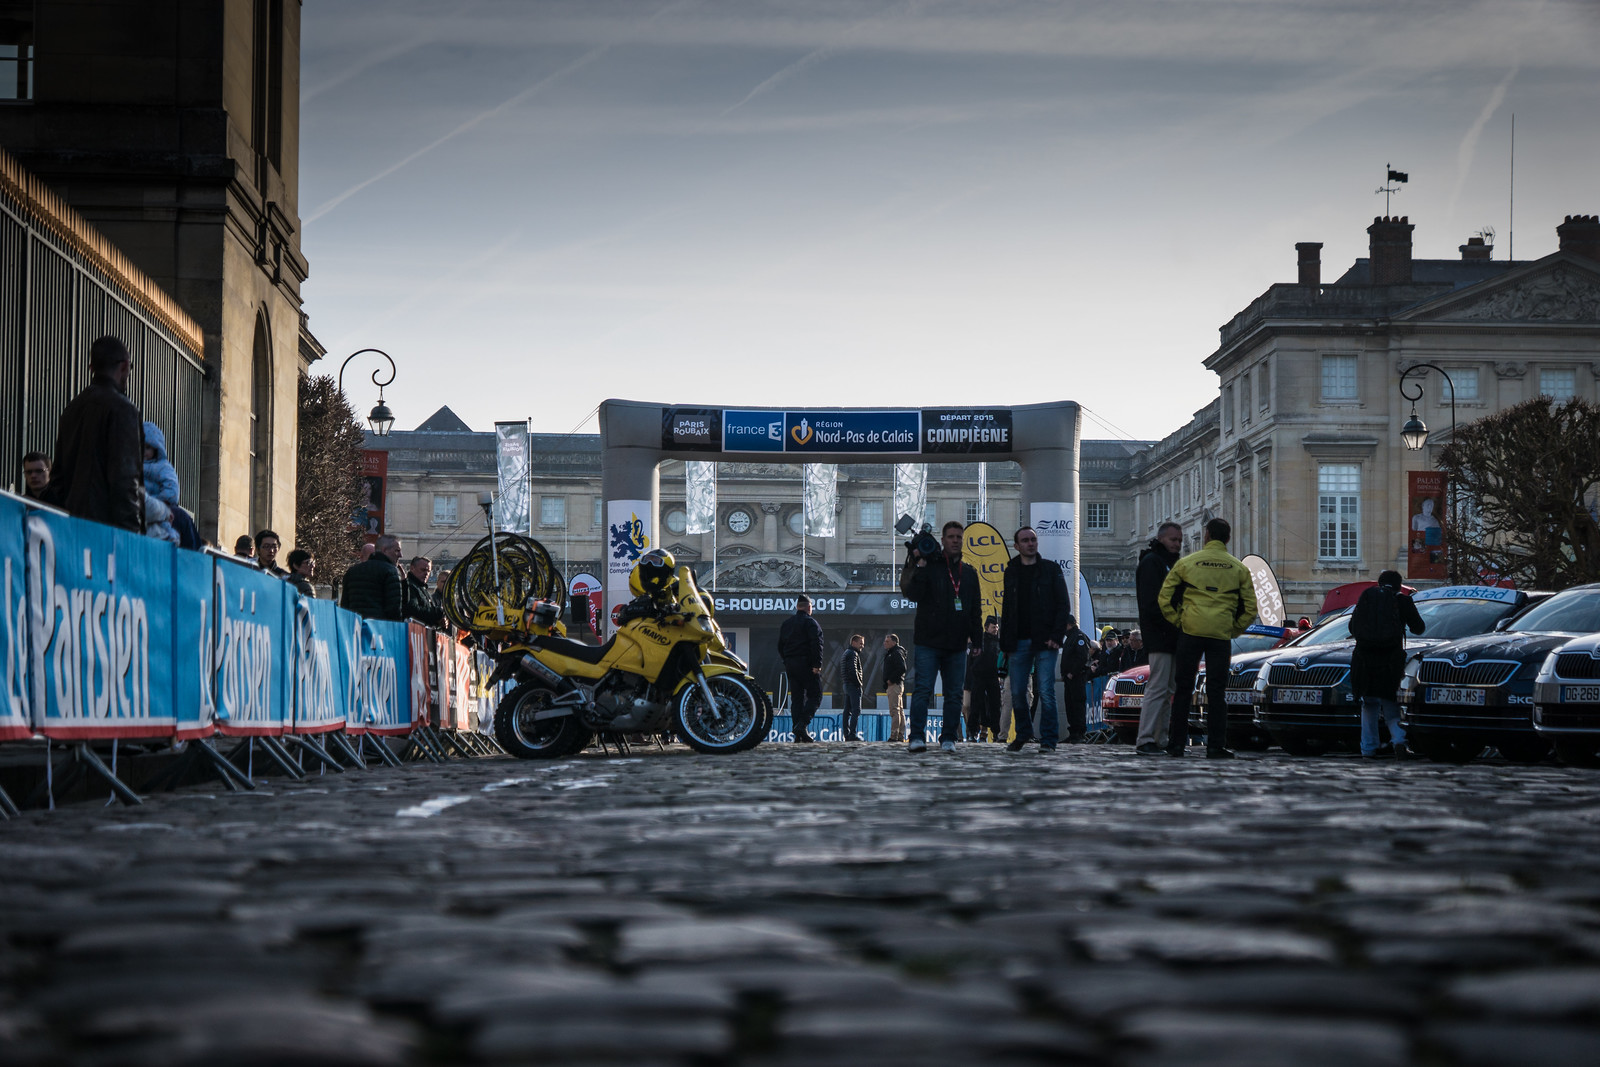 Paris Roubaix 2015-2